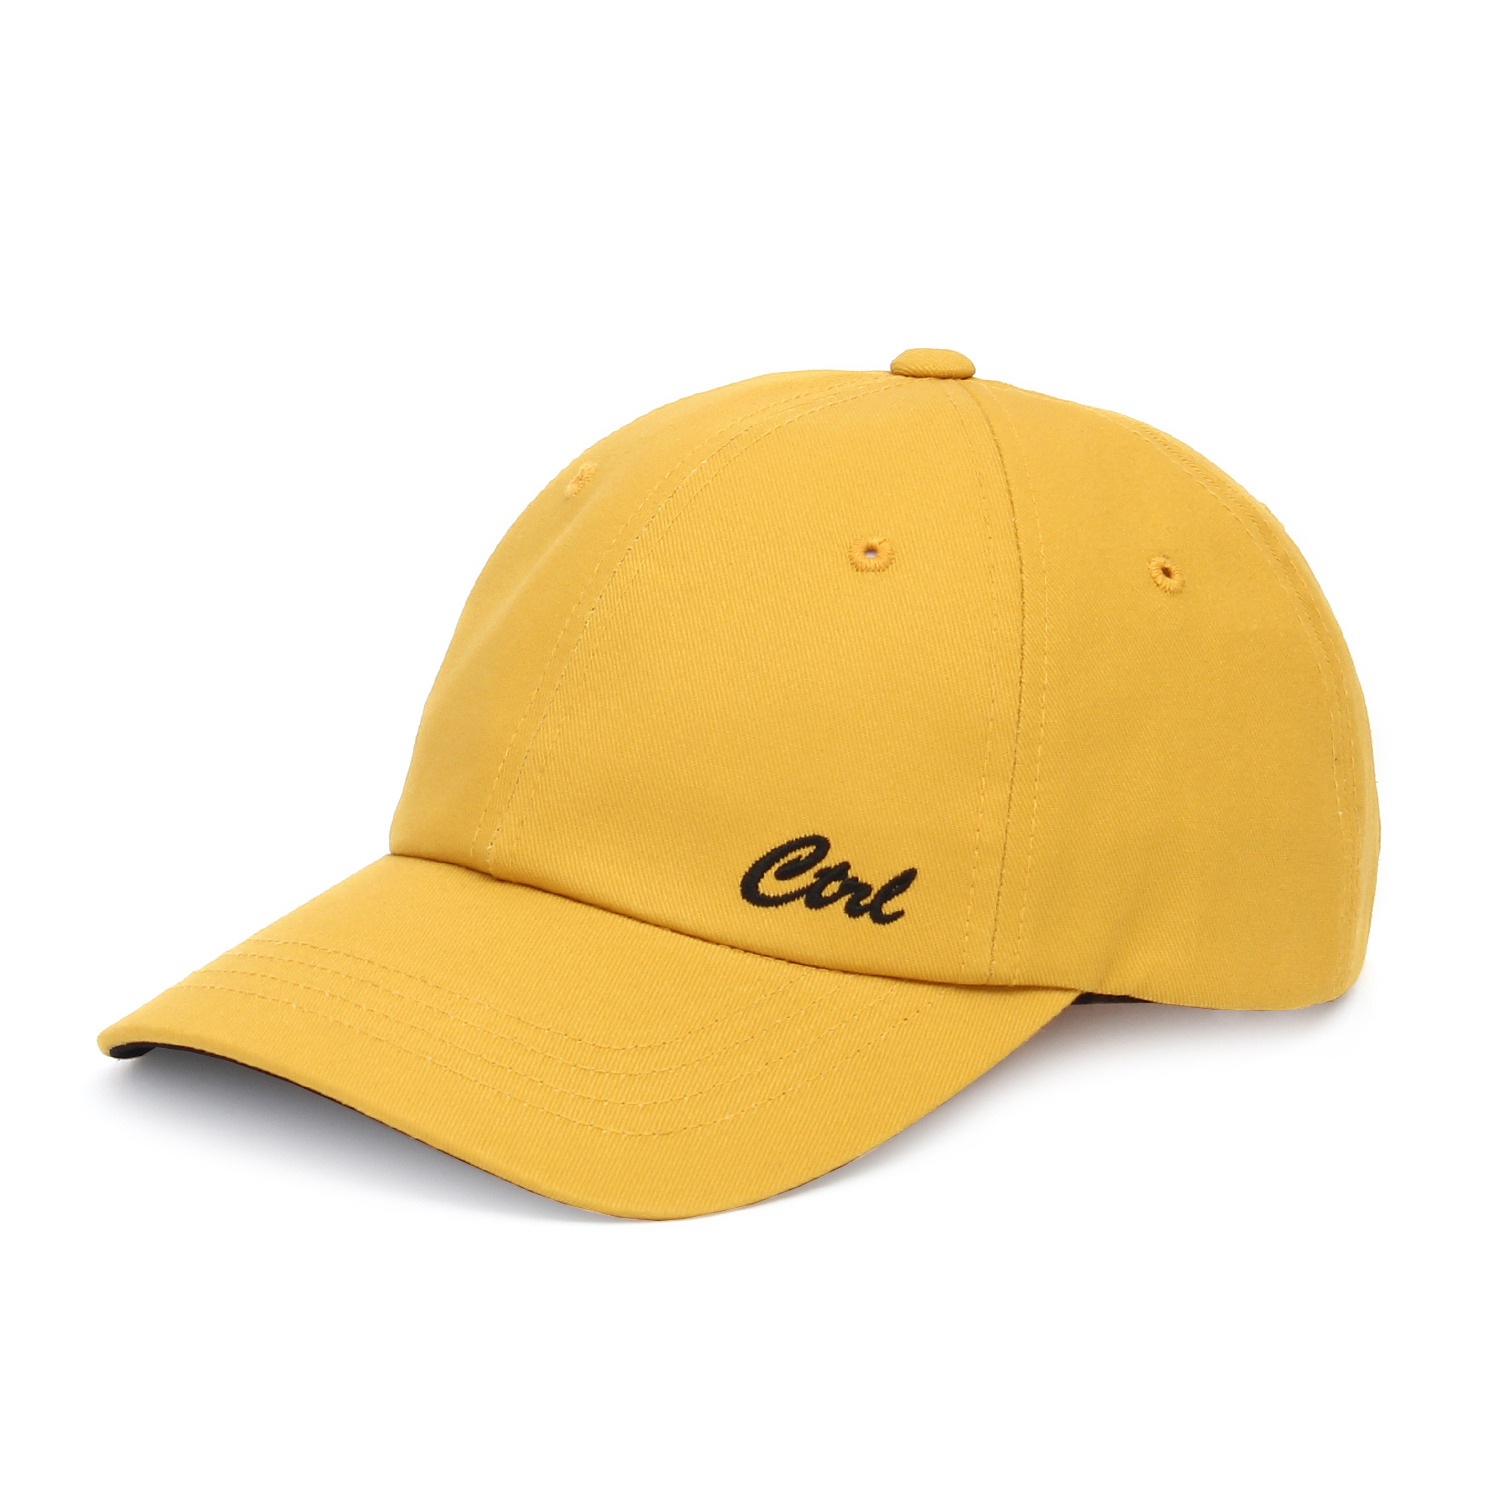 OG / AUTHENTIC B B / MUSTARD